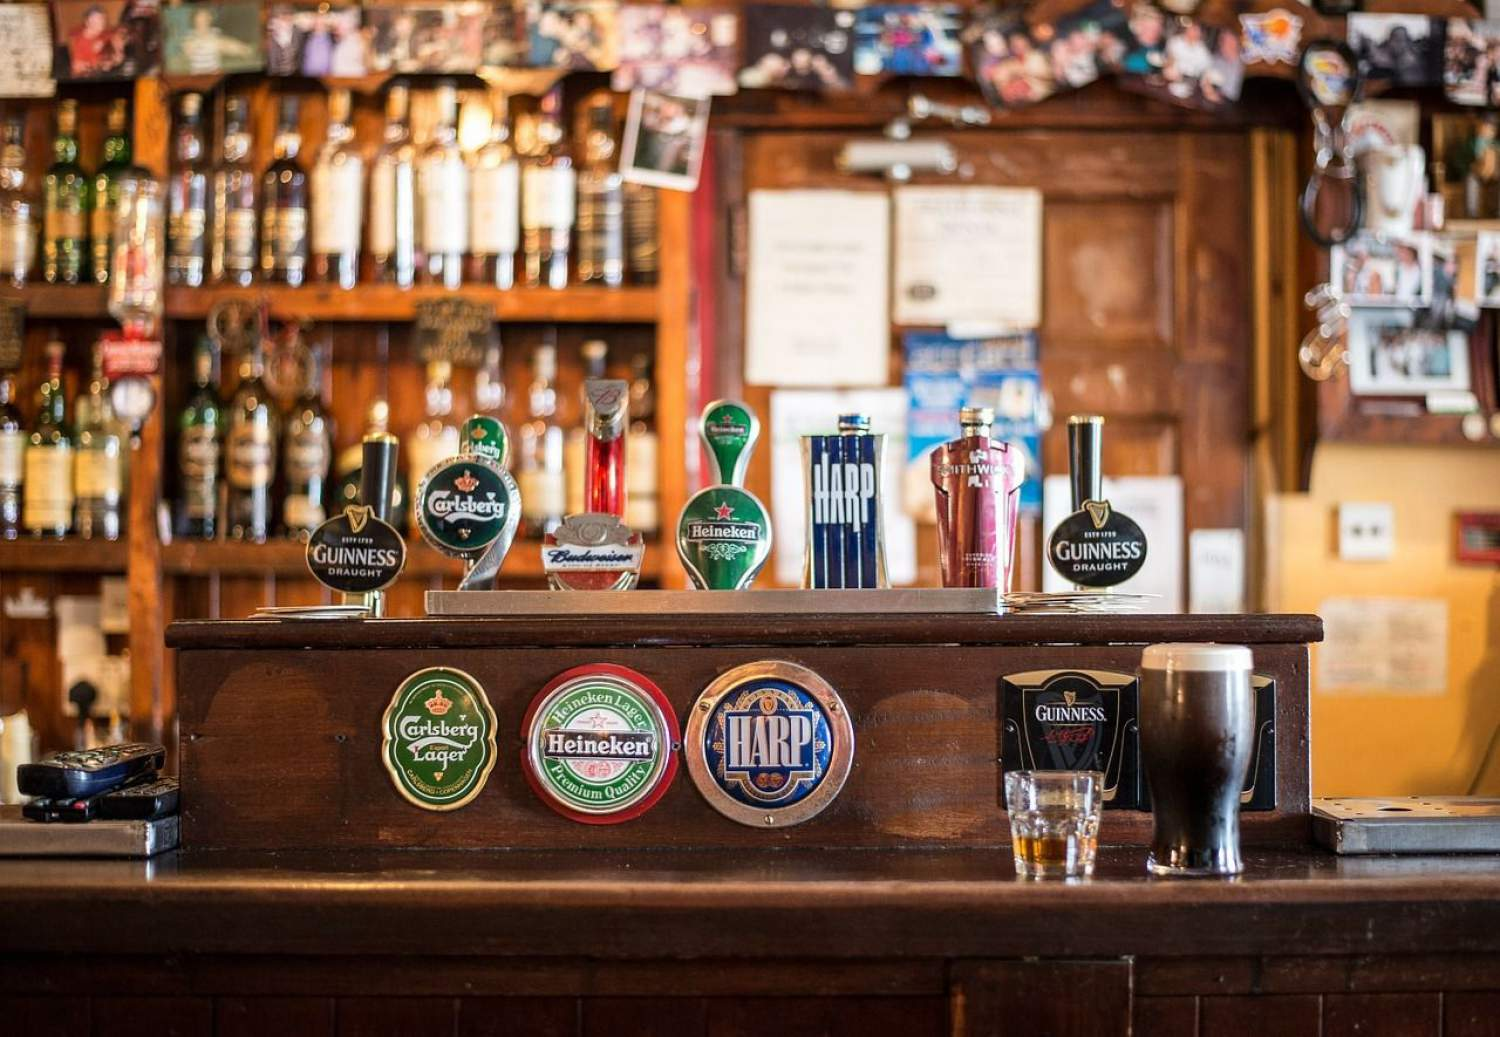 Beer taps into a bar